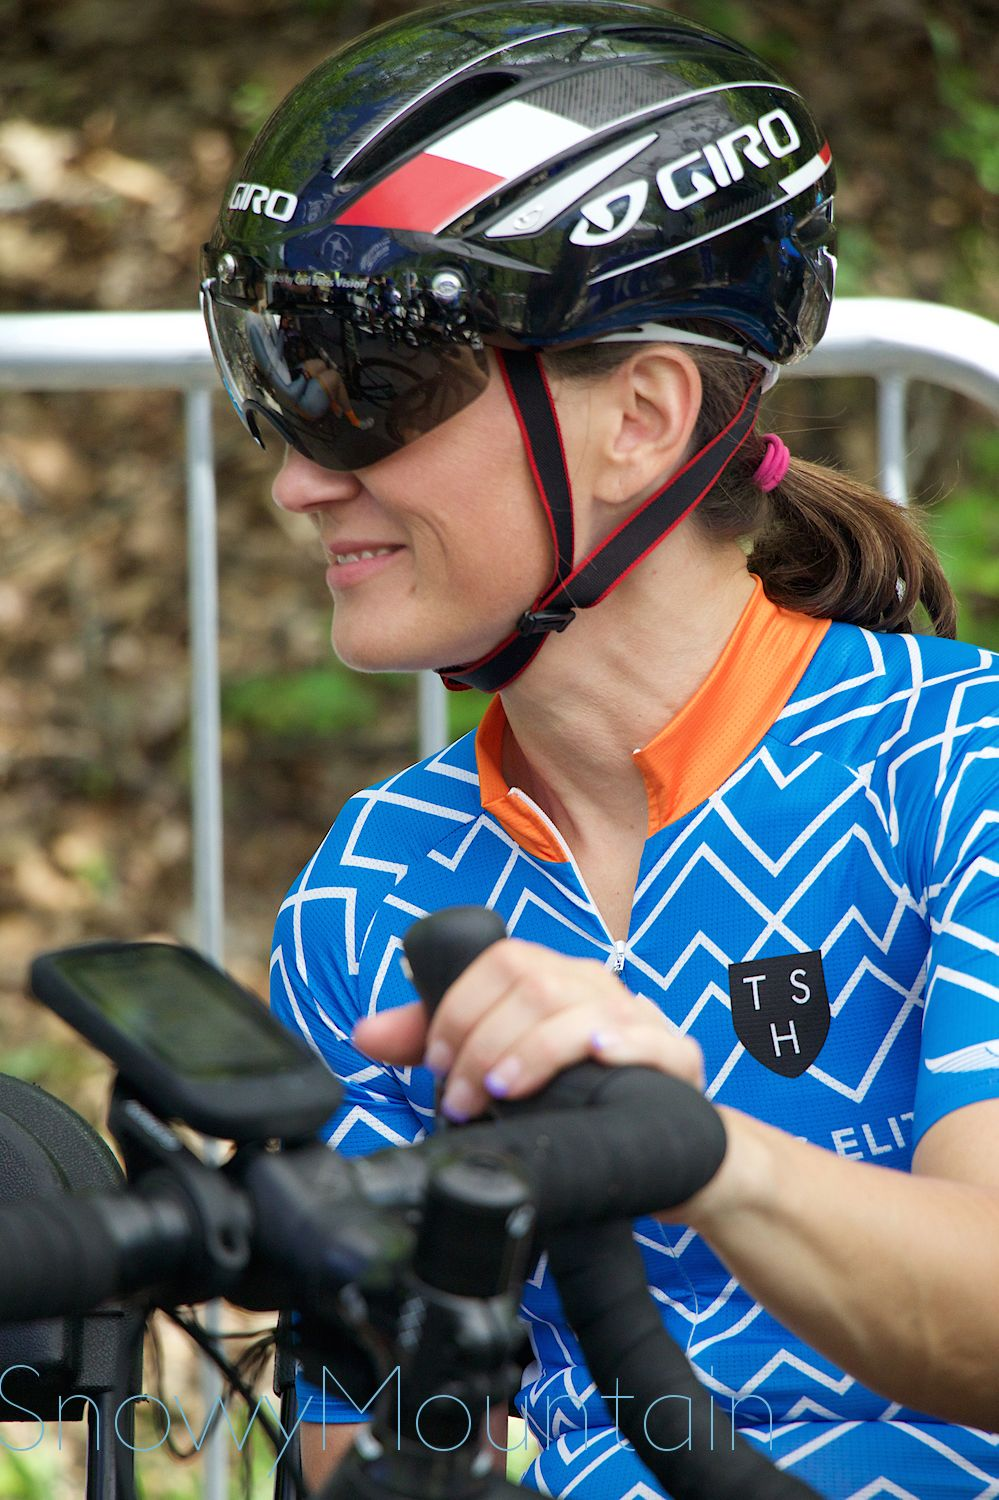 CWEC racer Christine Thornburg waits at the start. Photo by SnowyMountain Photography.